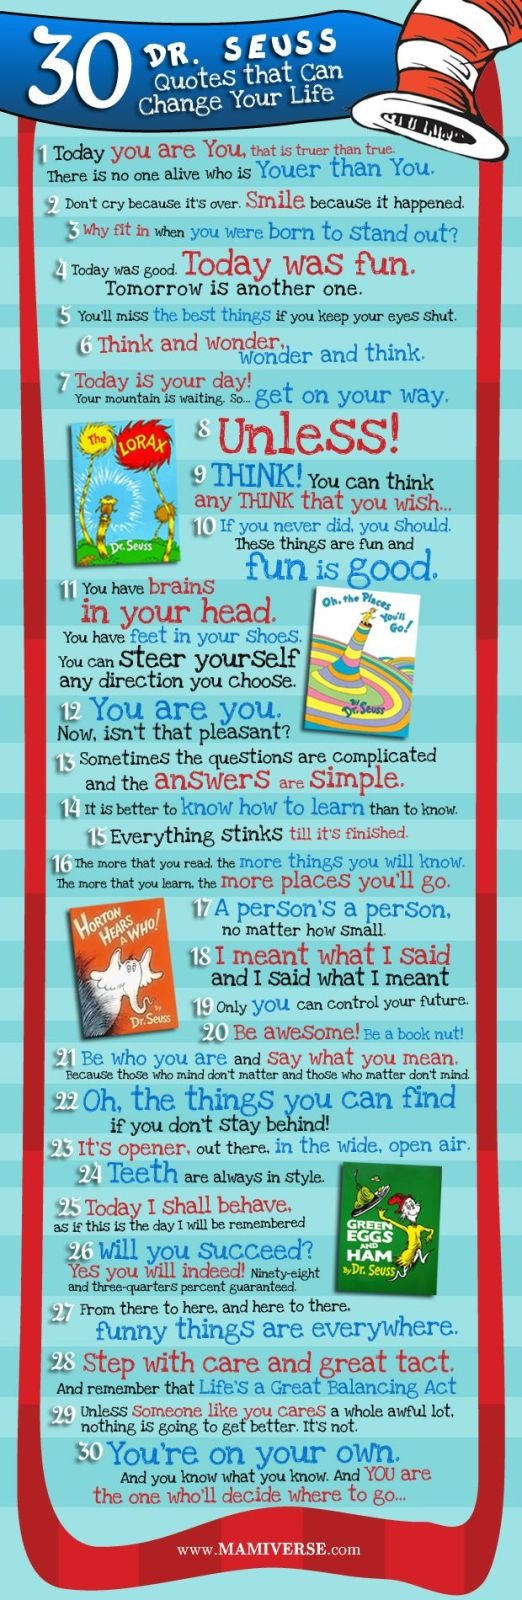 Happy Birthday Dr. Seuss! 30 Dr. Seuss Quotes to Live By!